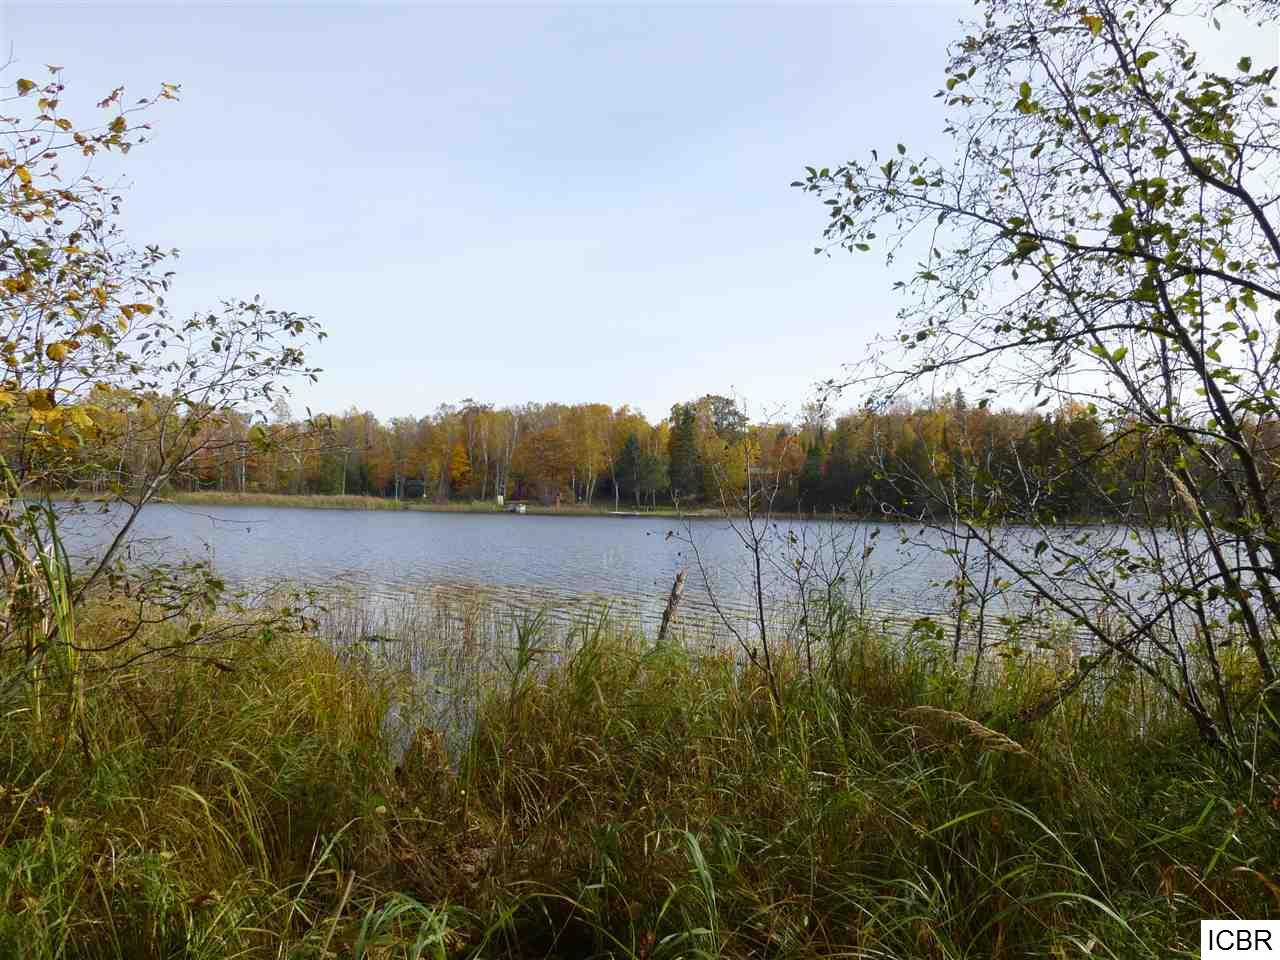 Tbd 640th LN Jacobson, MN 55752